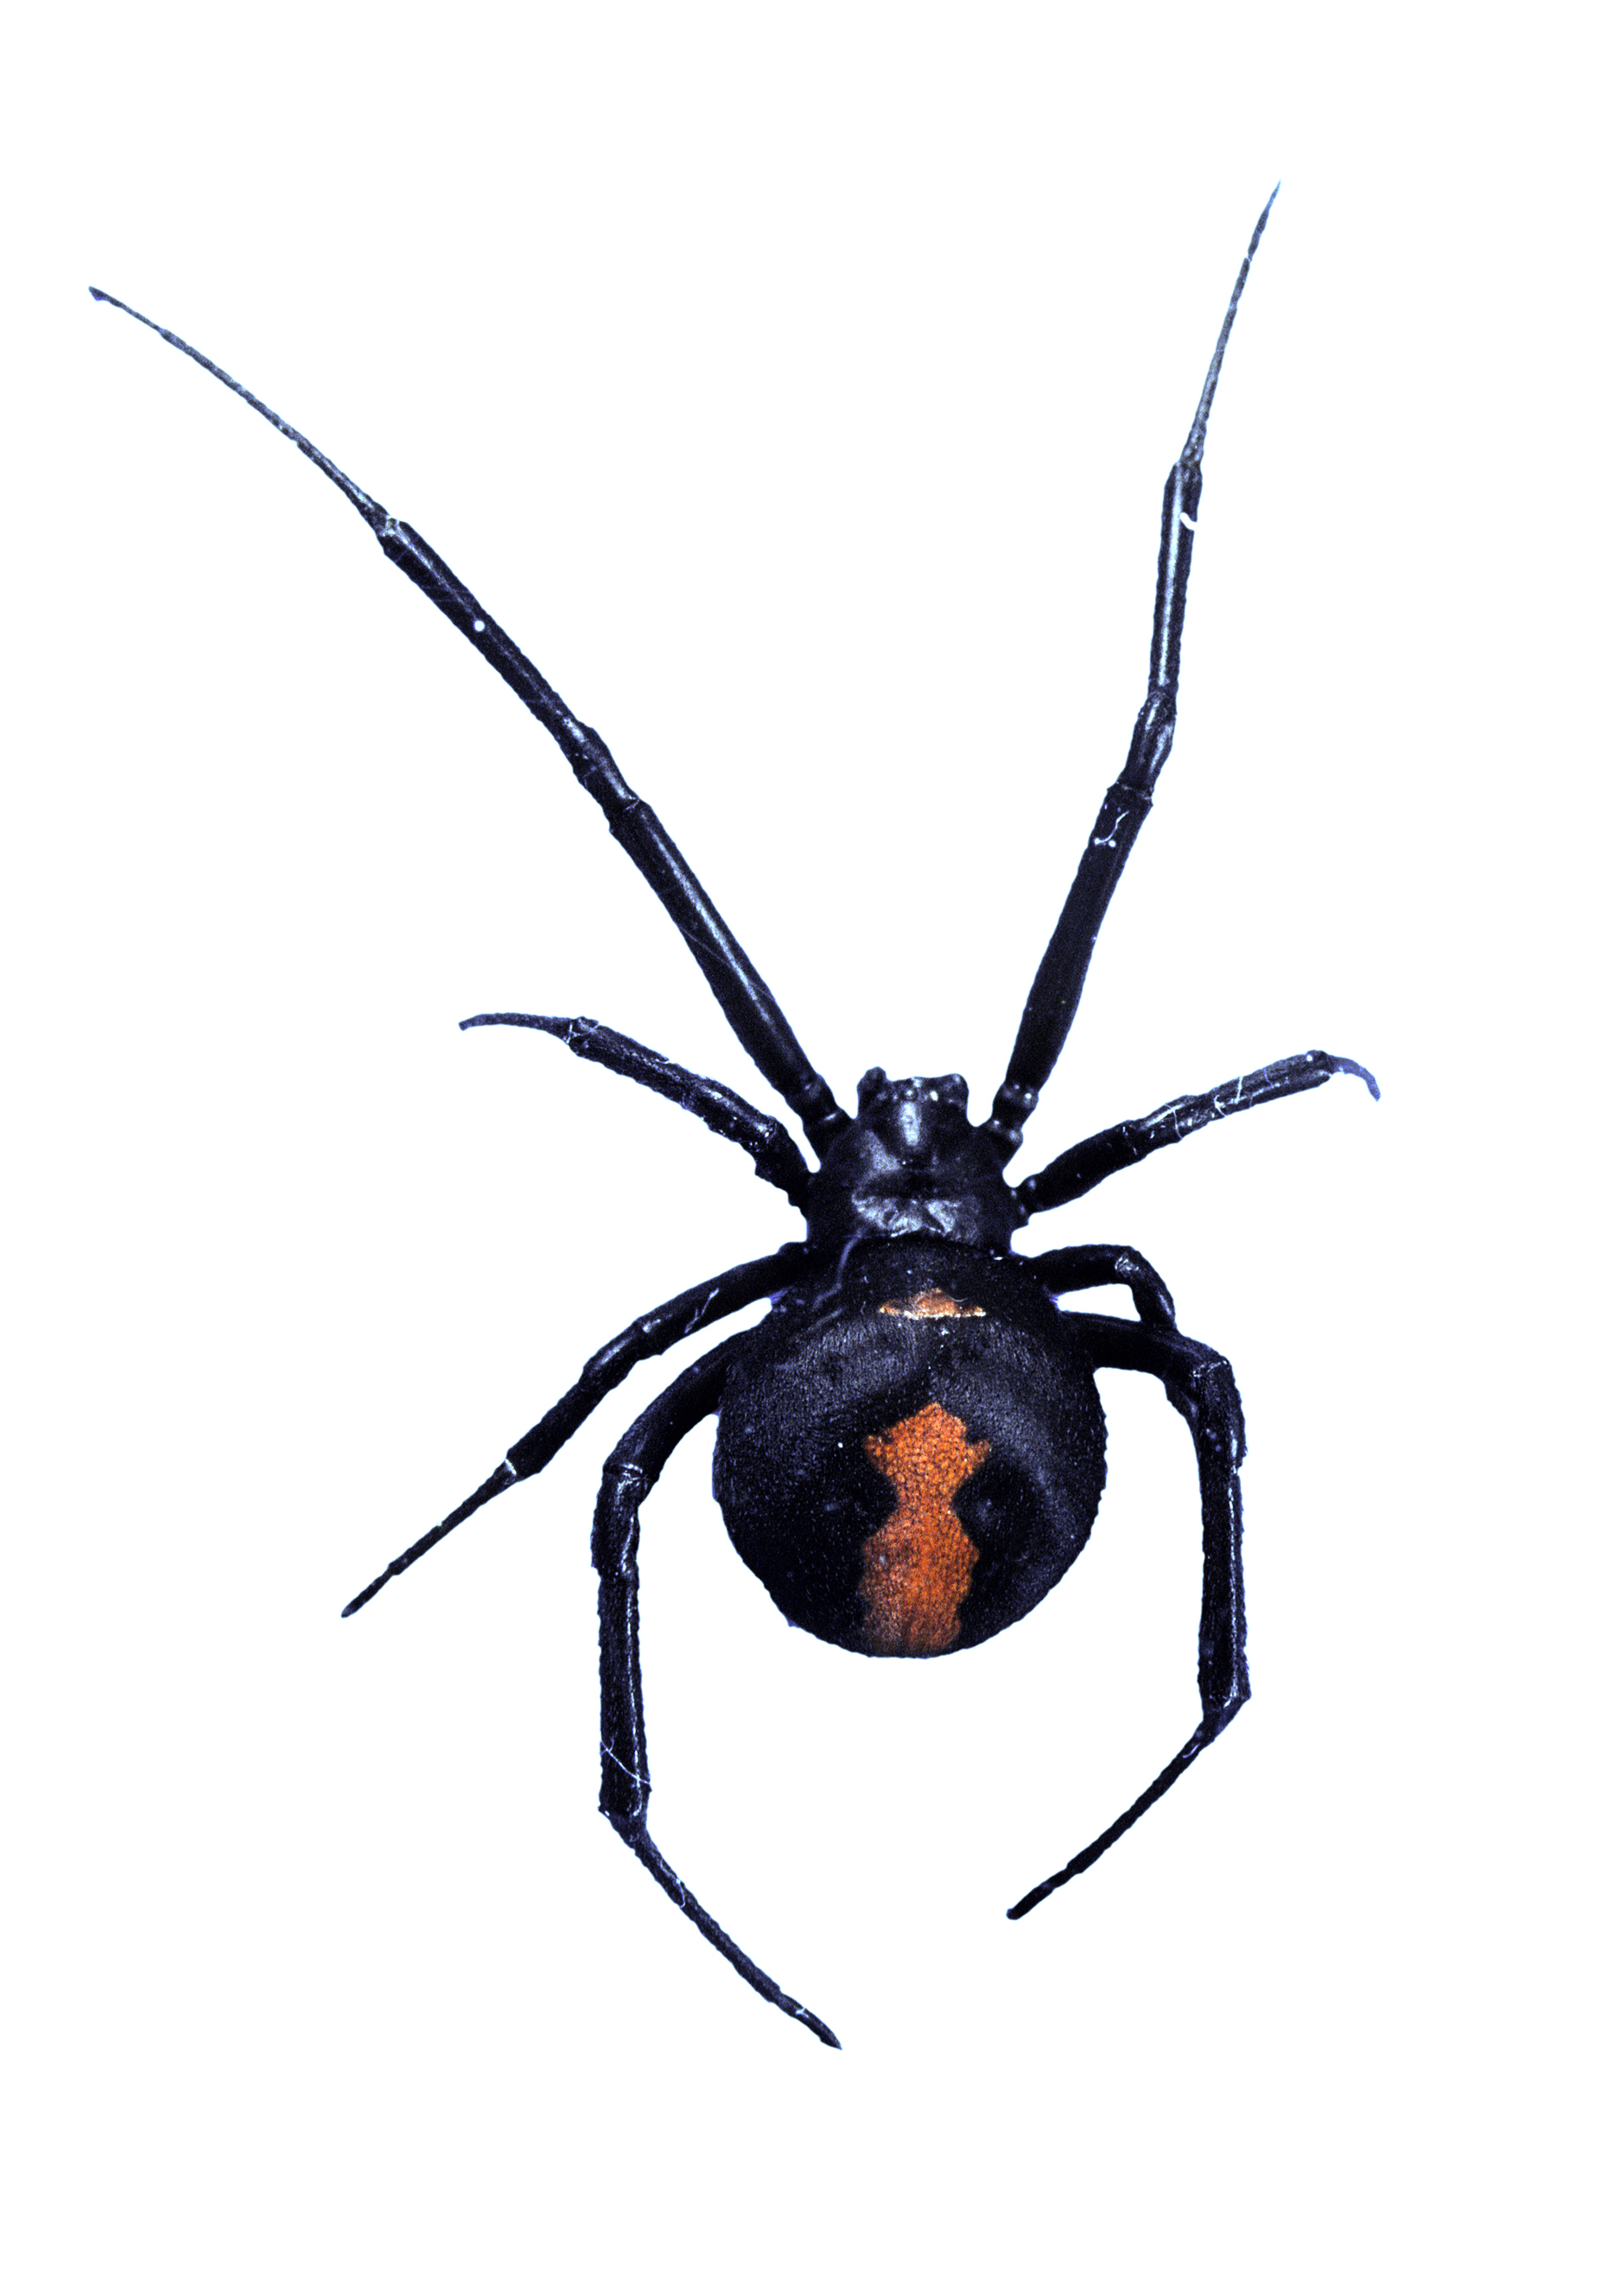 Image Result For Black Widow Spider